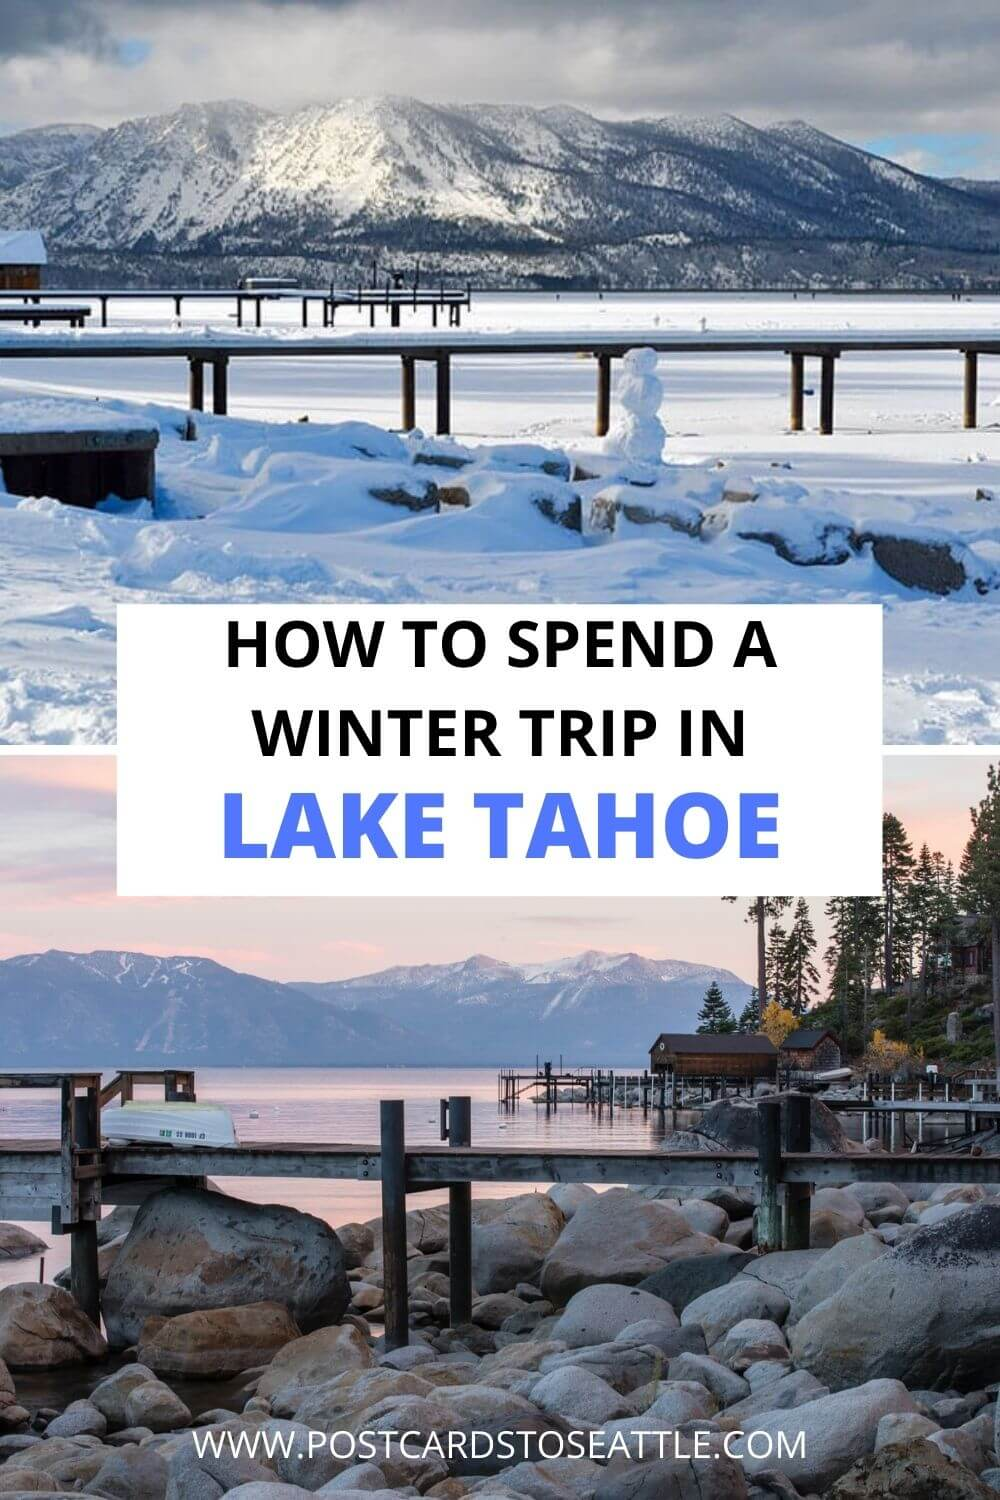 How to Plan an Epic Lake Tahoe Winter Vacation